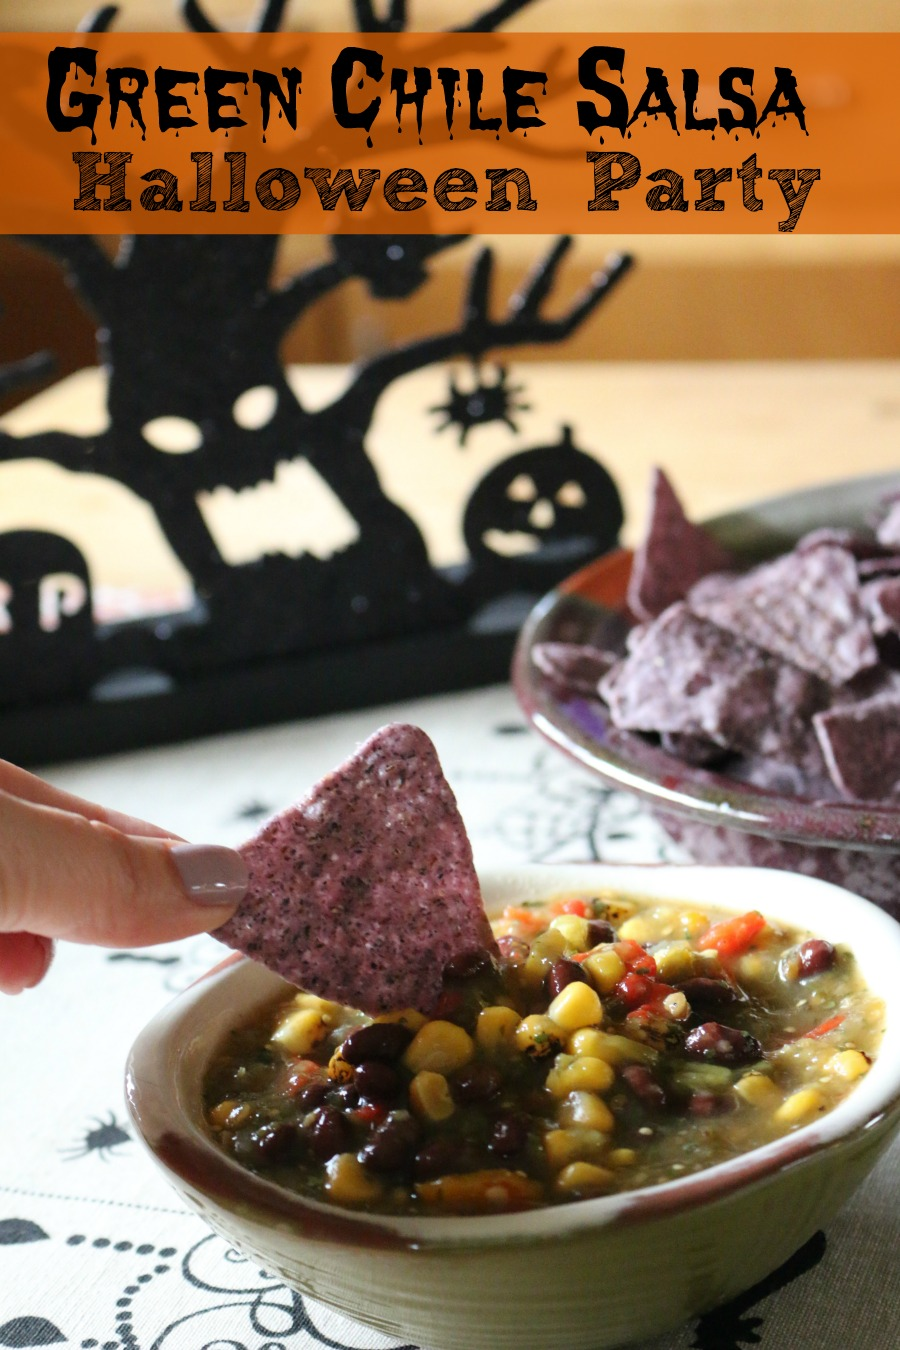 Green Chile Salsa - perfect Halloween Party Menu Idea - made in 3 Minutes!